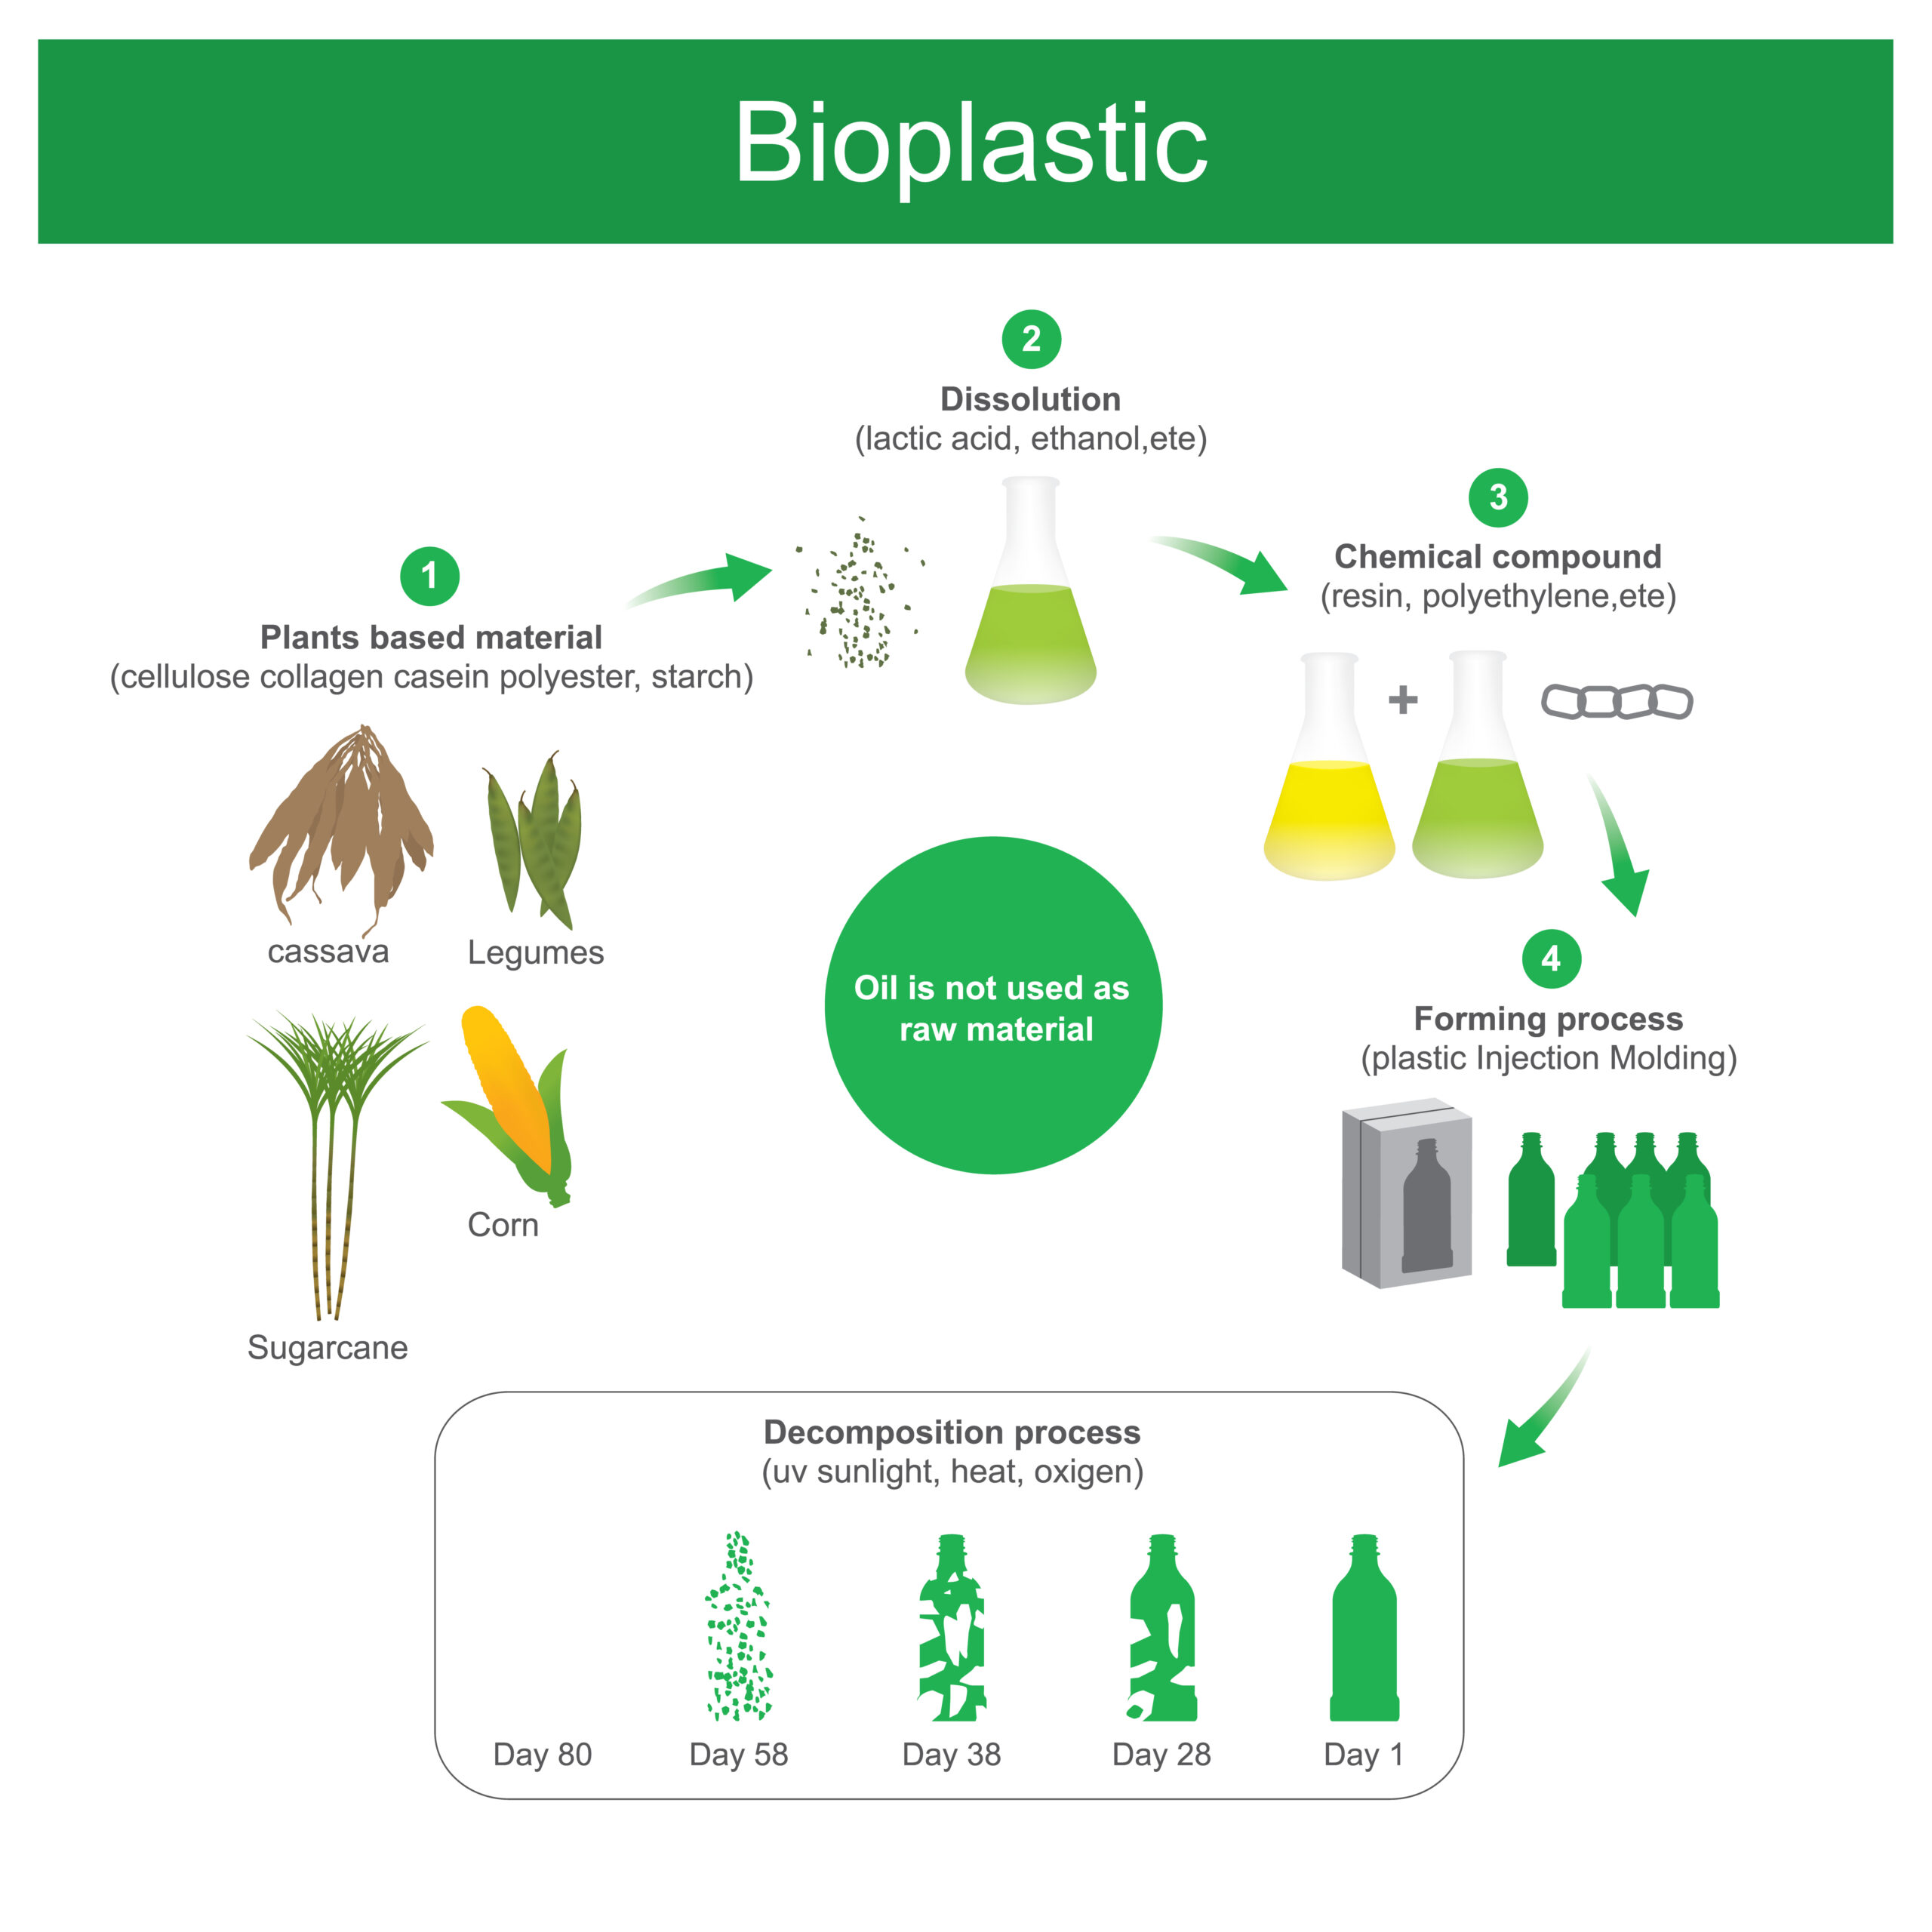 An infographic showing the process of making plant material into bioplastic.